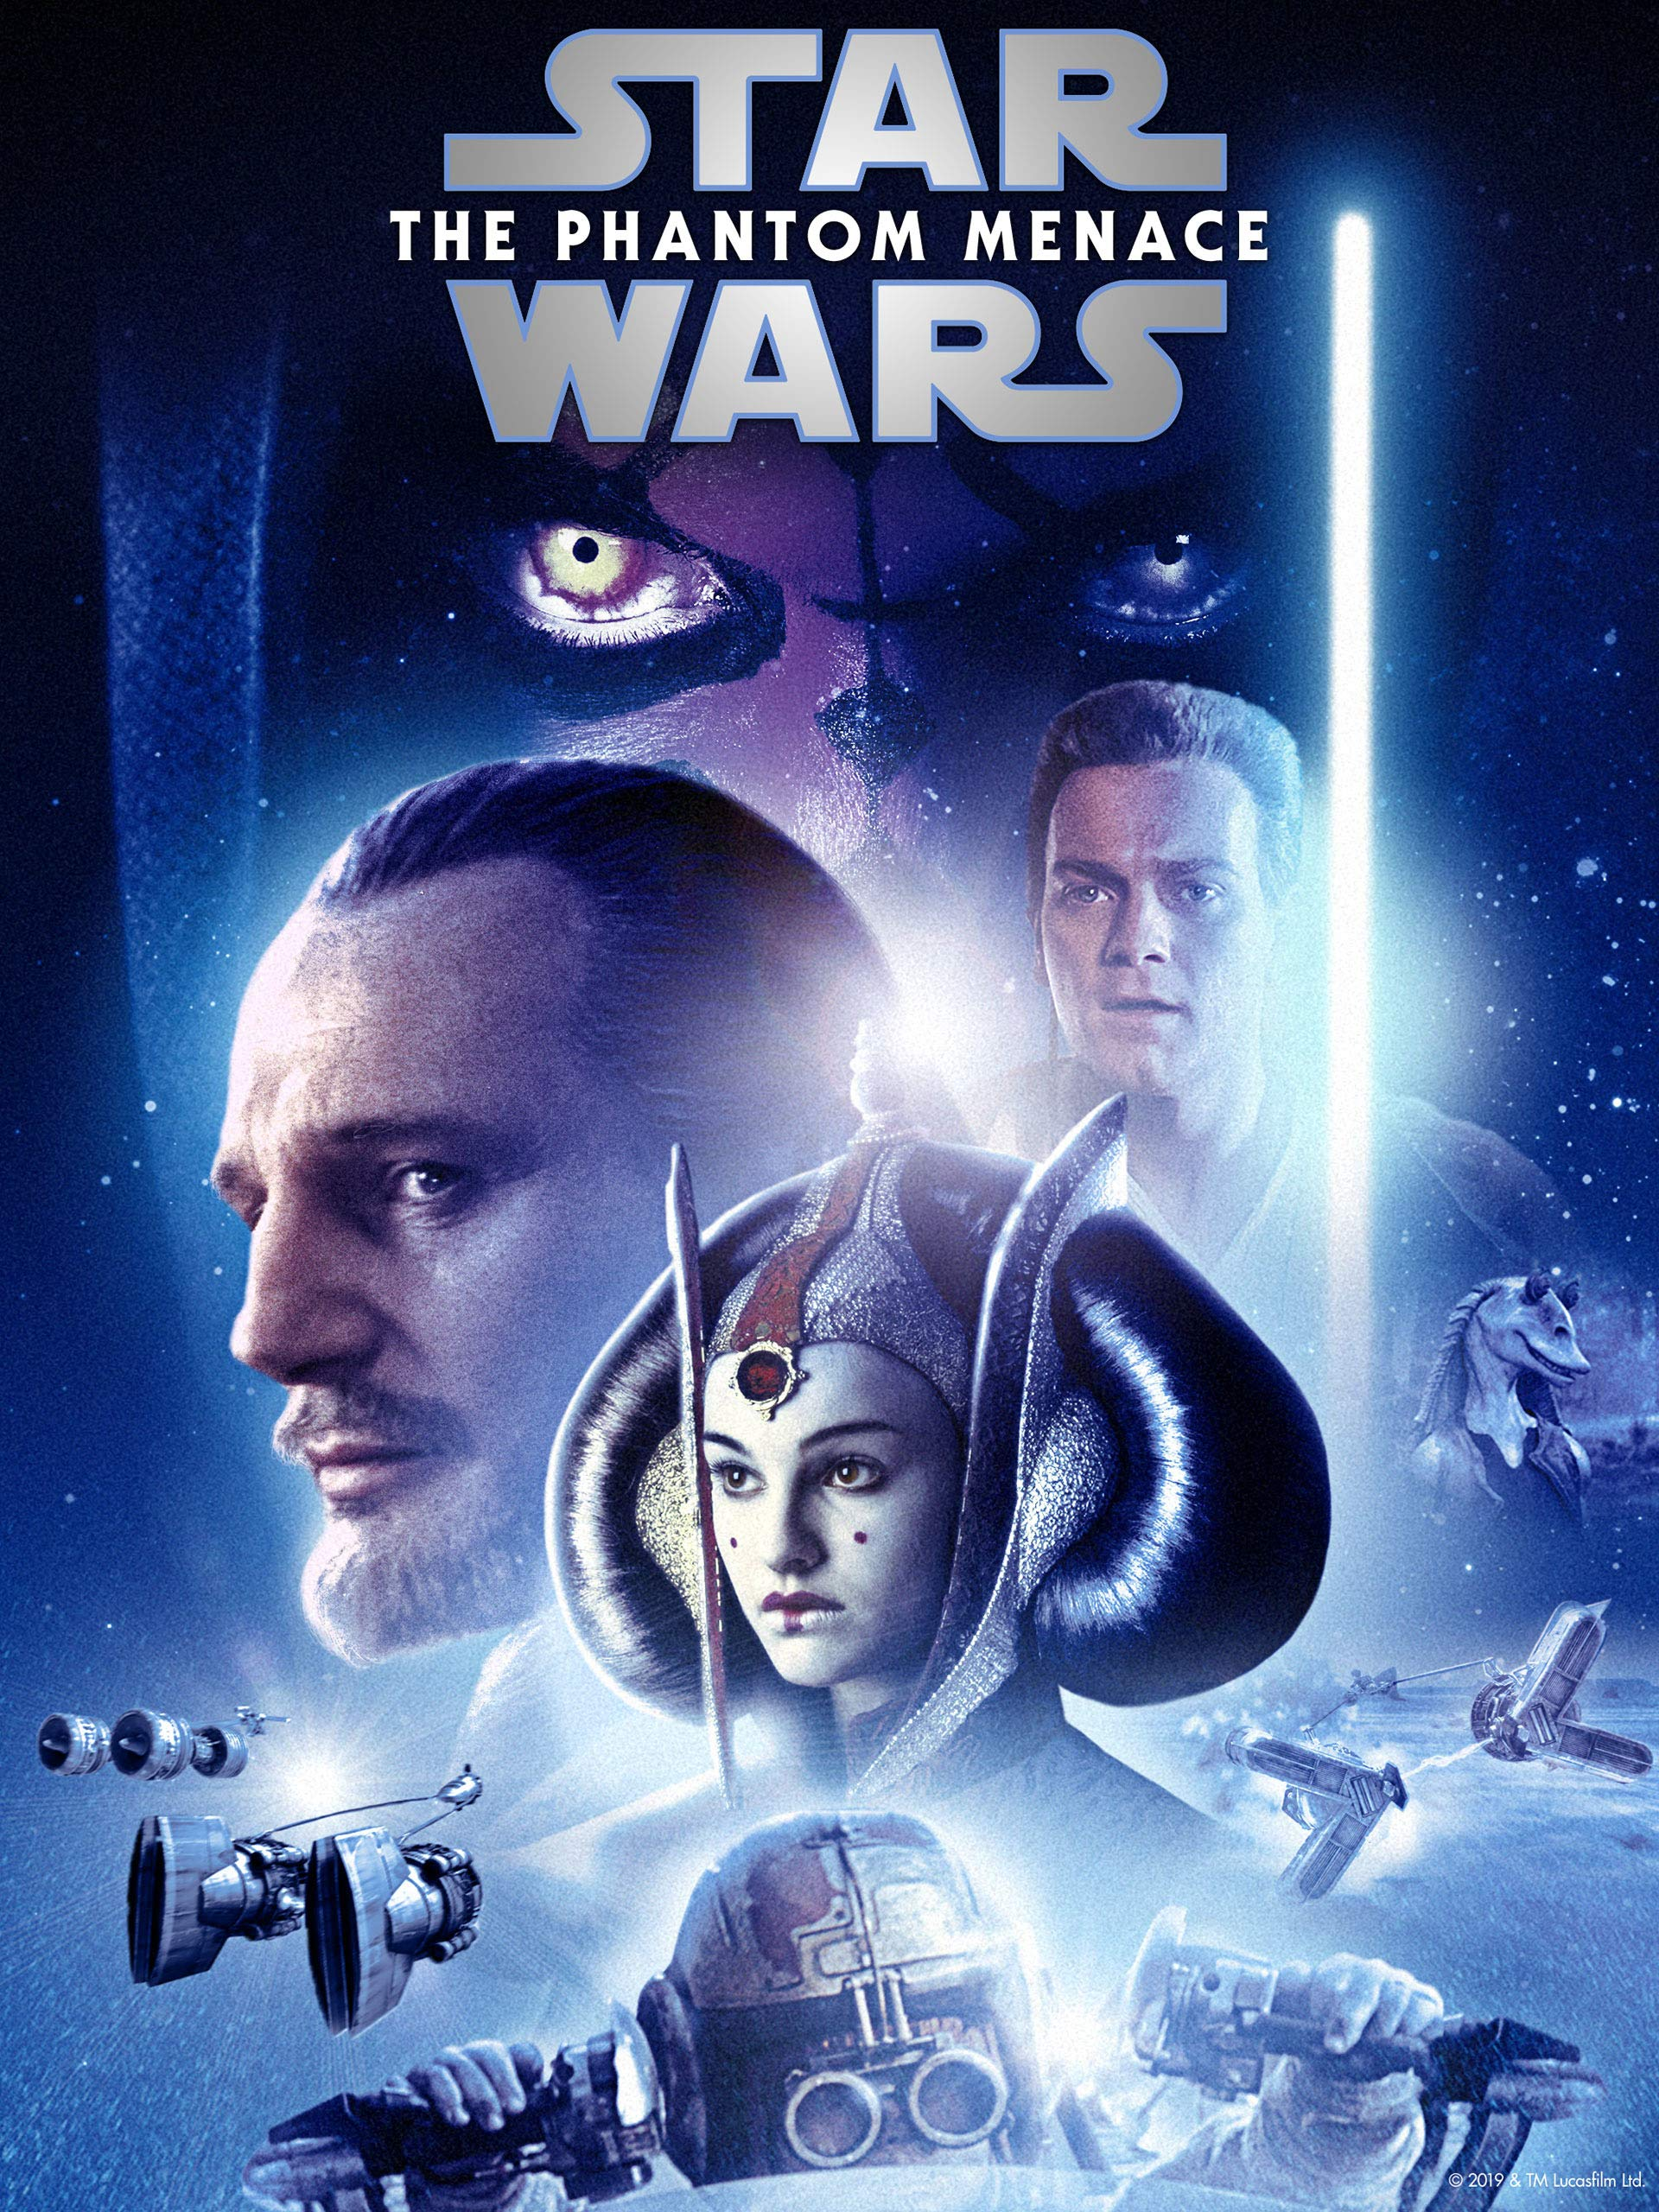 star wars the phantom menace full movie free